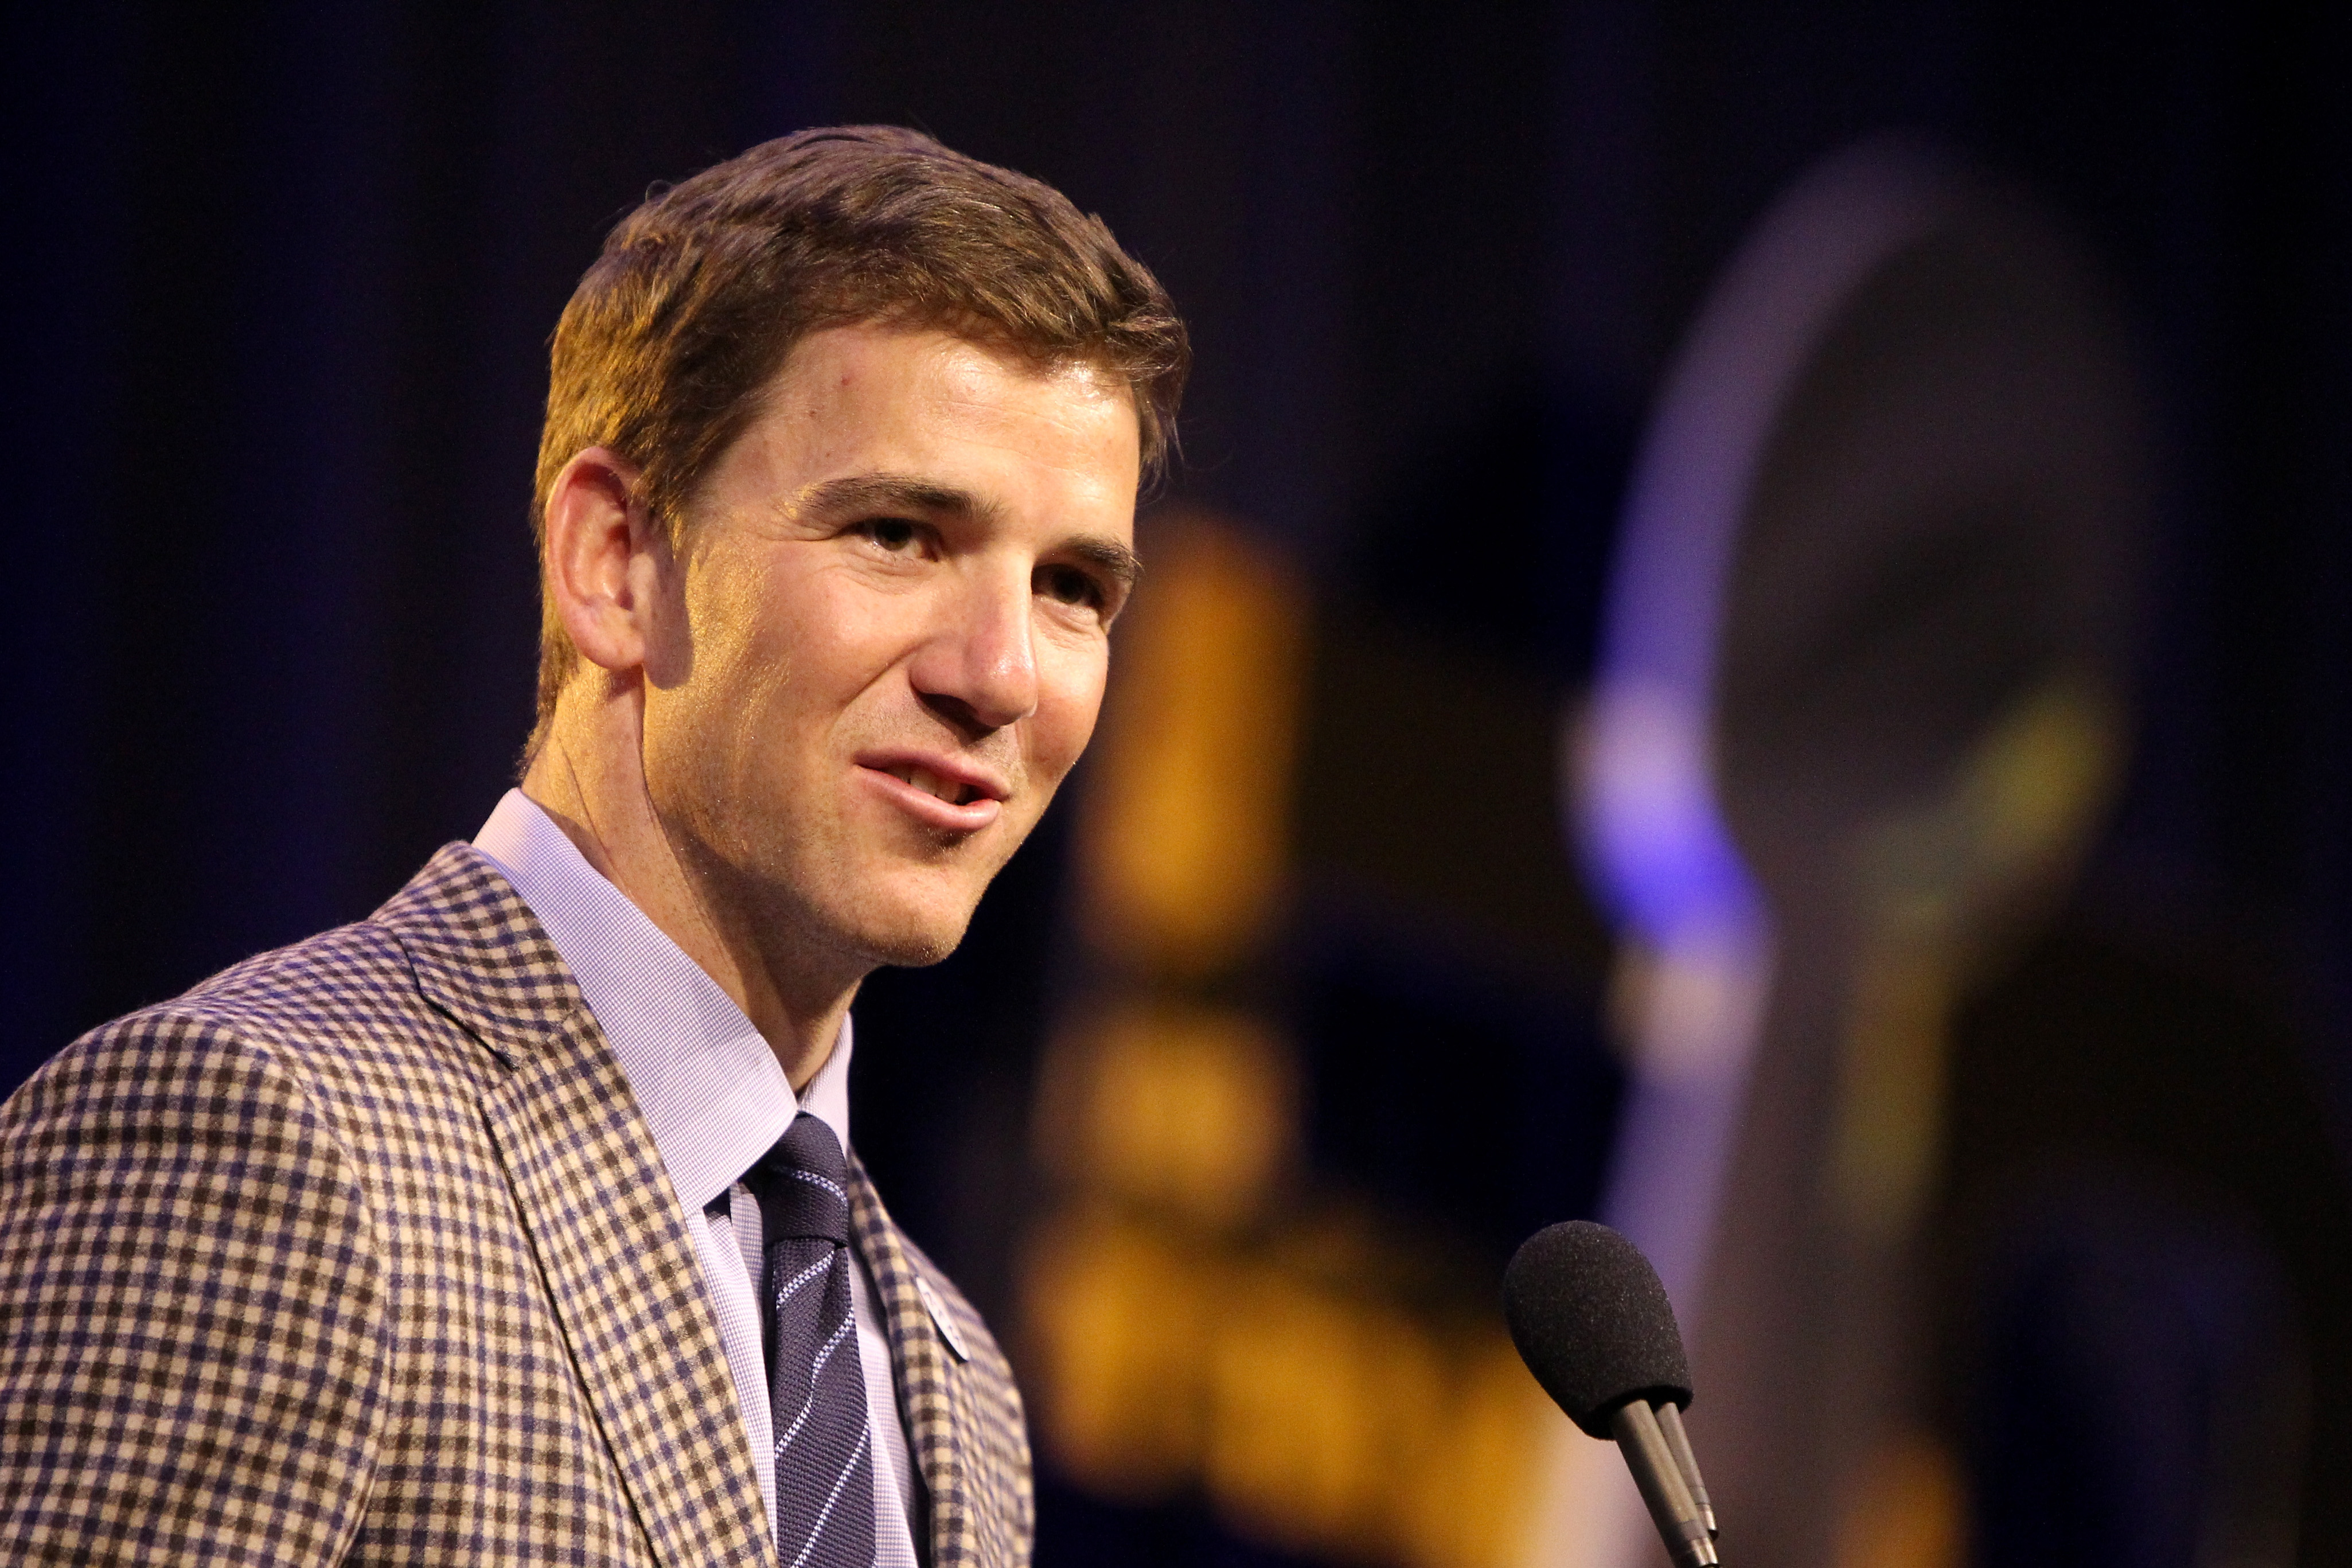 Finalist Eli Manning of the New York Giants speaks during the 2015 Walter Payton Man of the Year Finalist press conference prior to Super Bowl 50 at the Moscone Center West on February 5, 2016 in San Francisco, California.